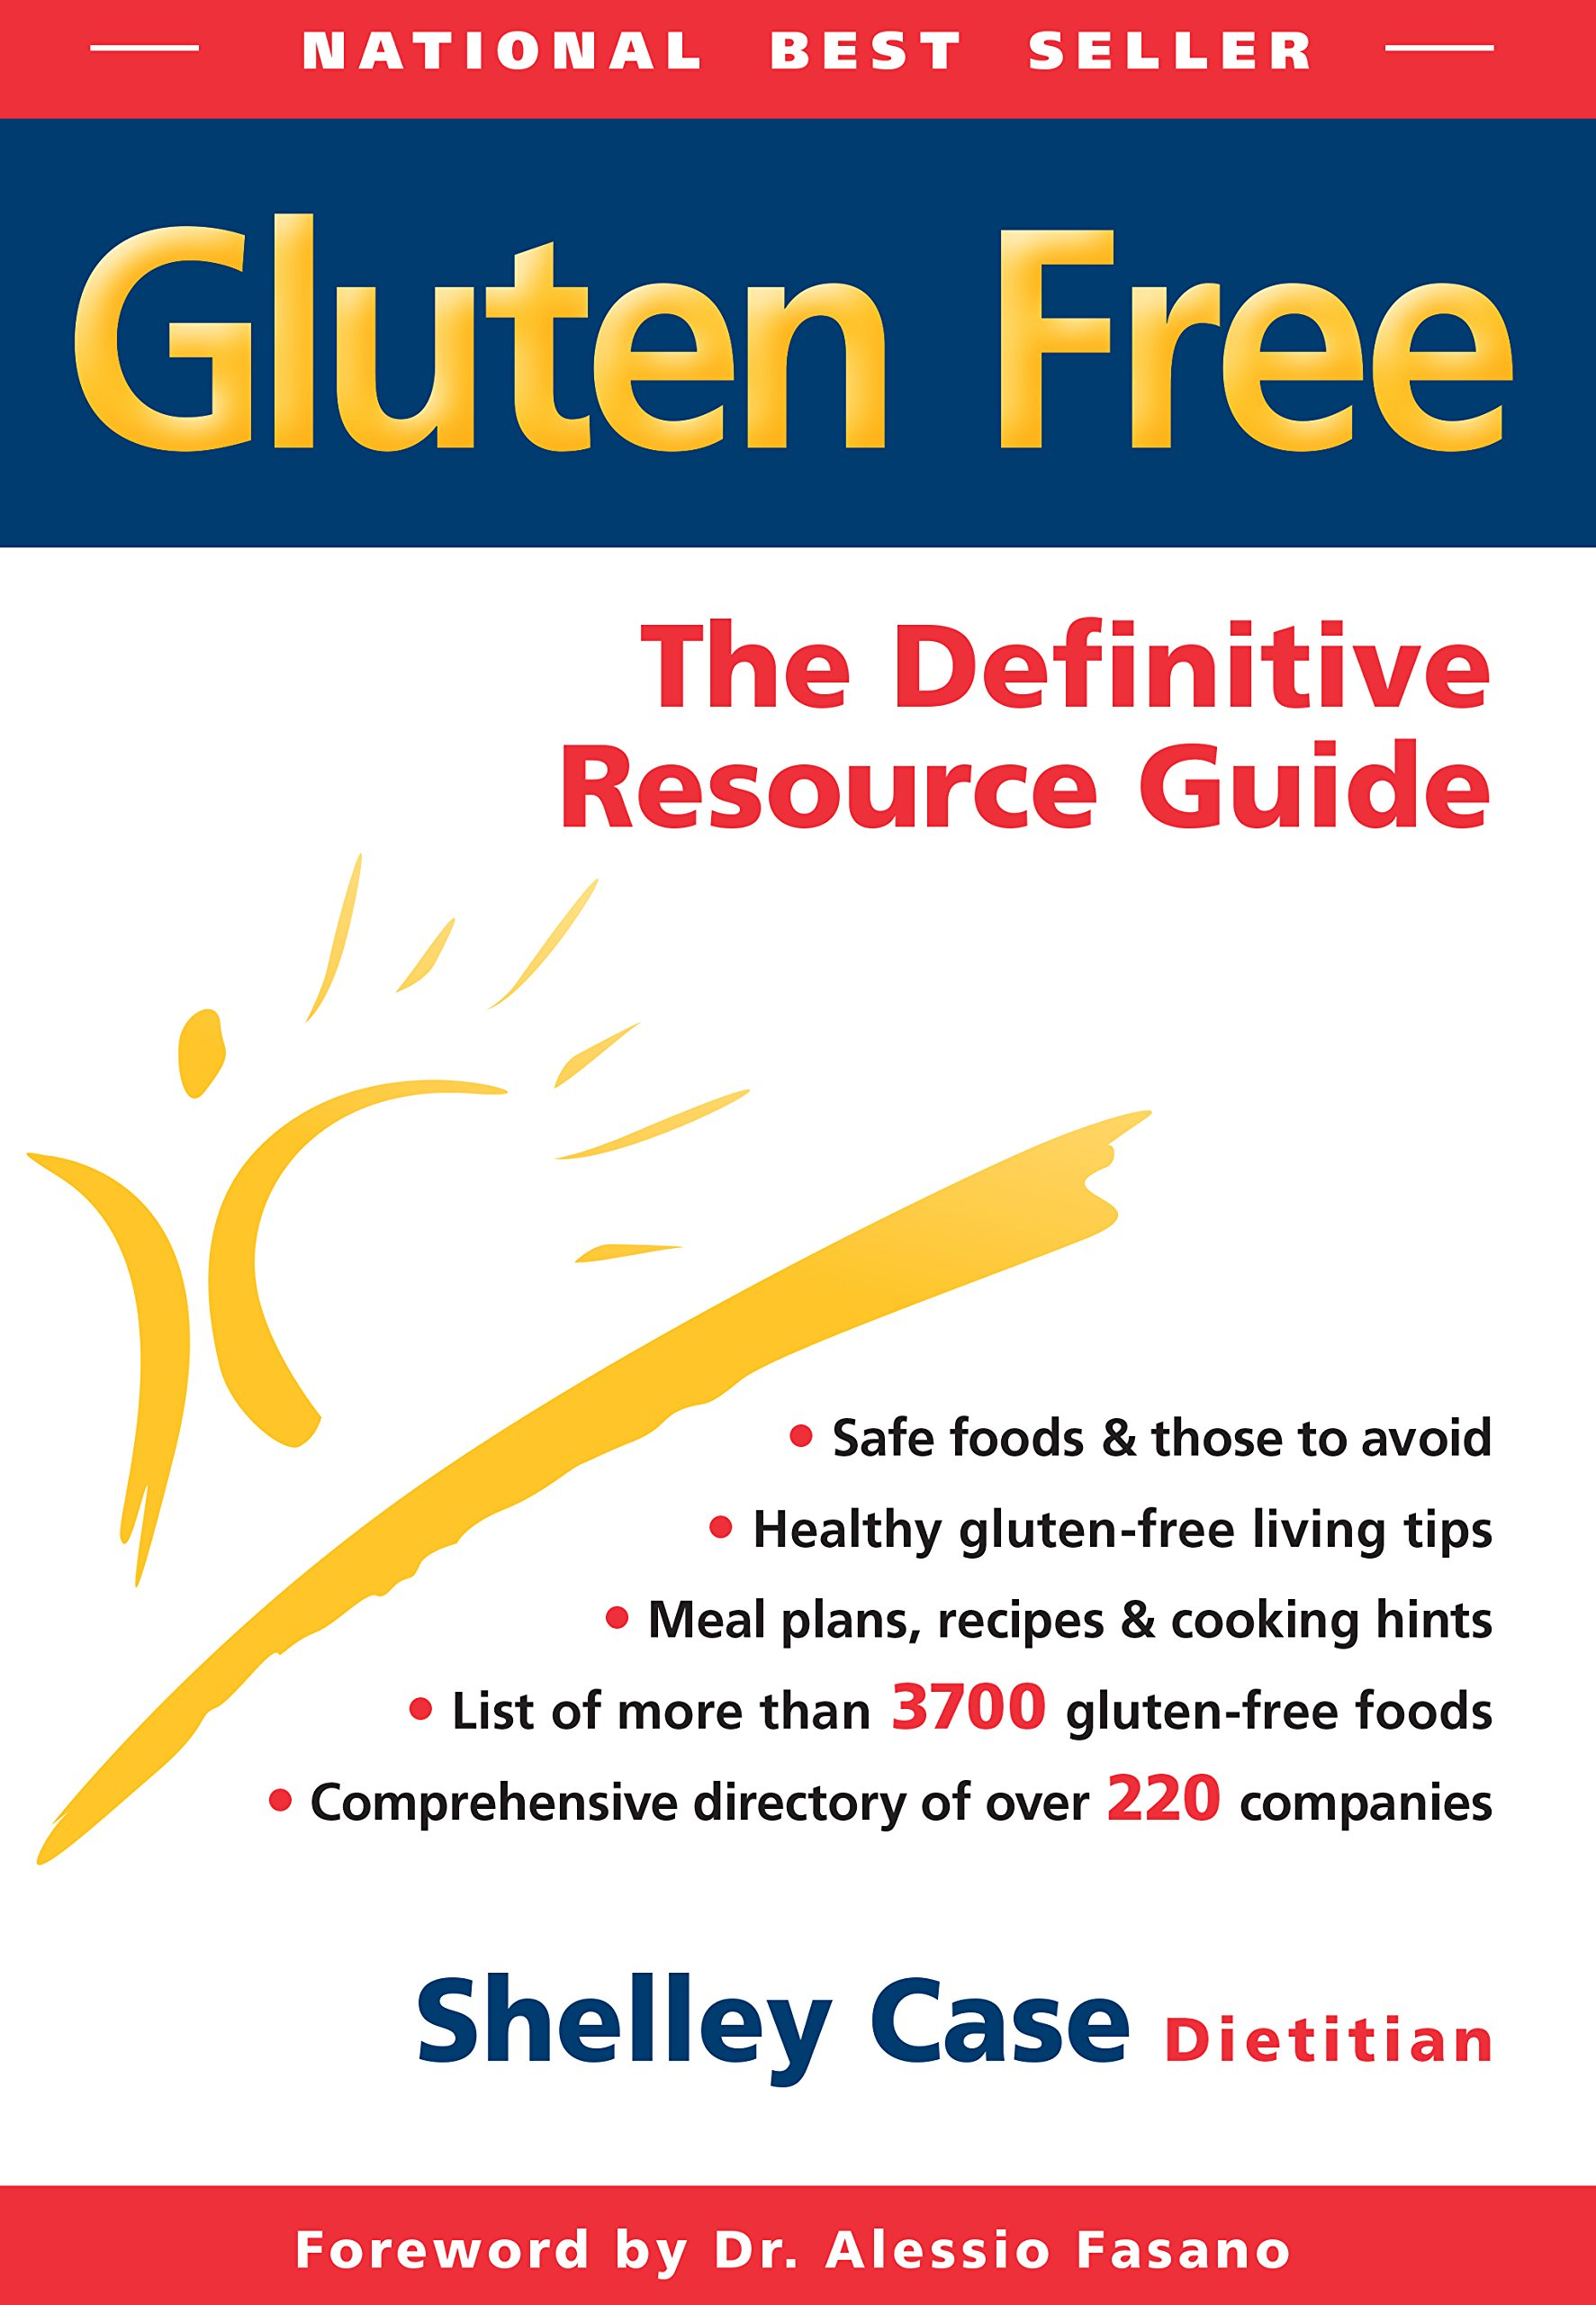 Gluten Free: The Definitive Resource Guide by Case Nutrition Consulting, Inc.